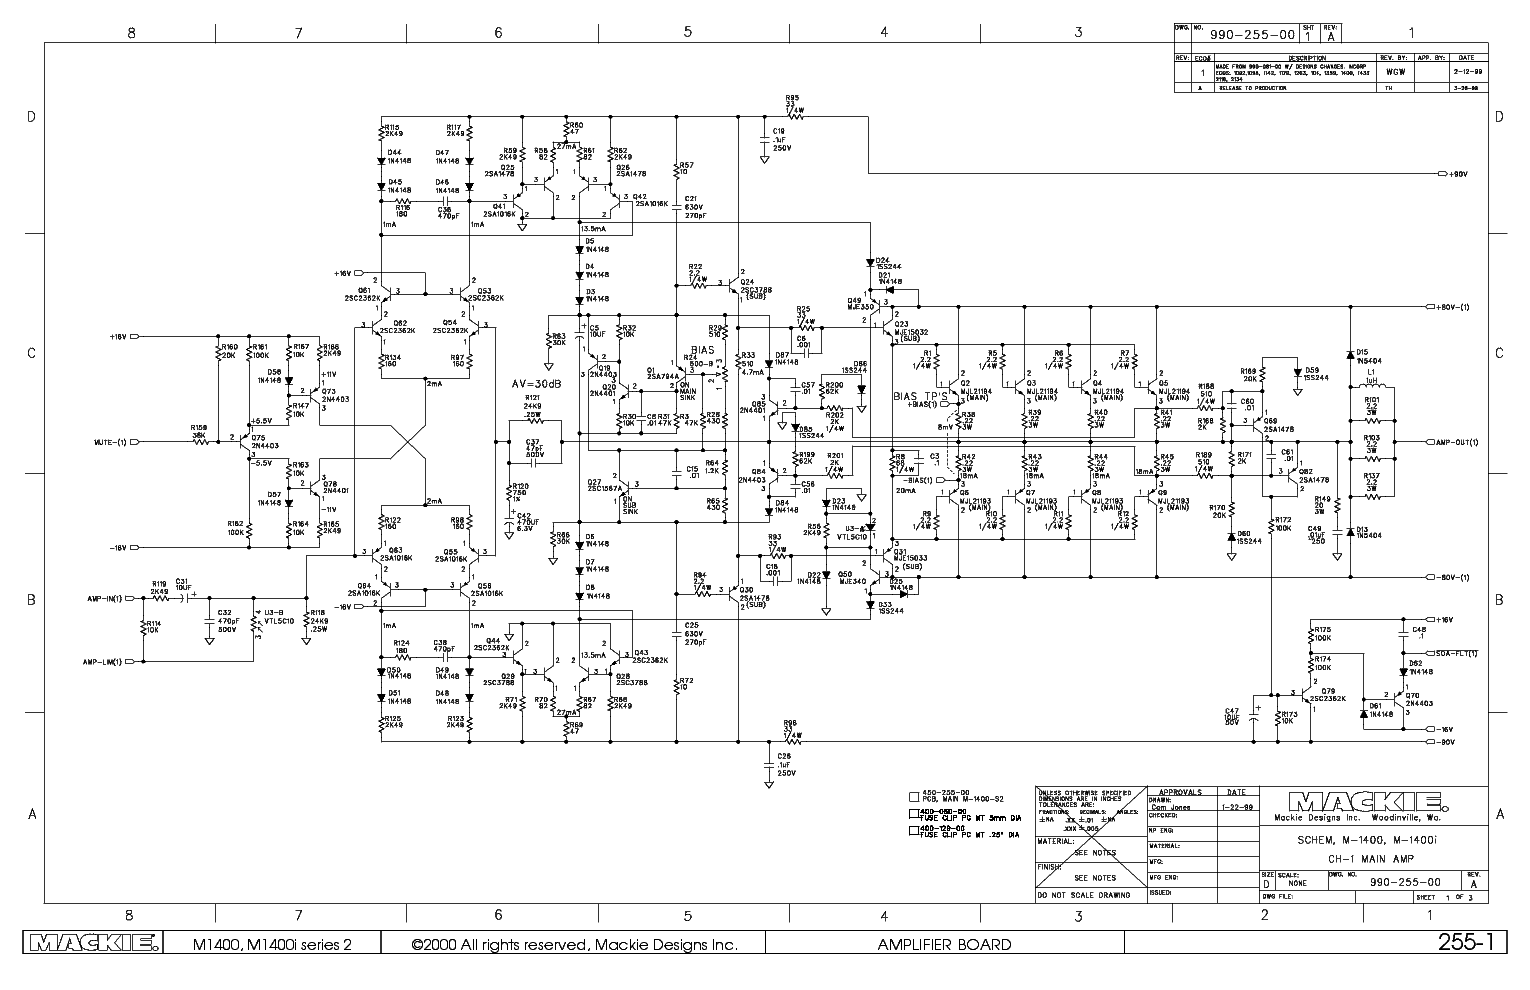 Equalizer Wiring Diagram Custom Project 2366b Coleman Mackie Mixer Schematic Circuit And Schematics Systems Auto Level